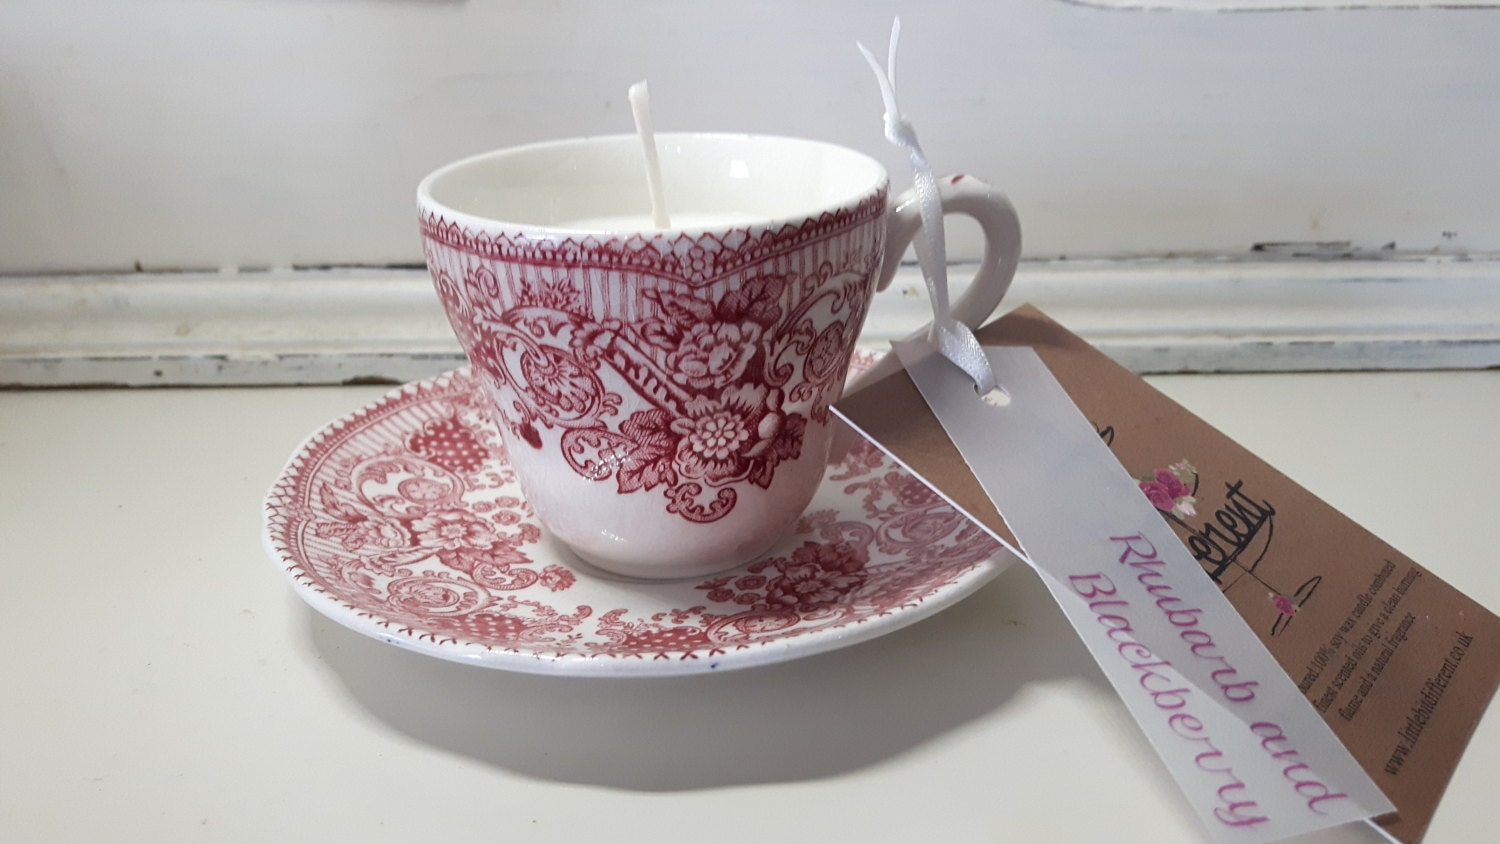 Hand poured  soy wax  vintage dainty Wedgewood coffee cup candle, scented with lemongrass, lemon drizzle cake and rhubarb and blackberry.